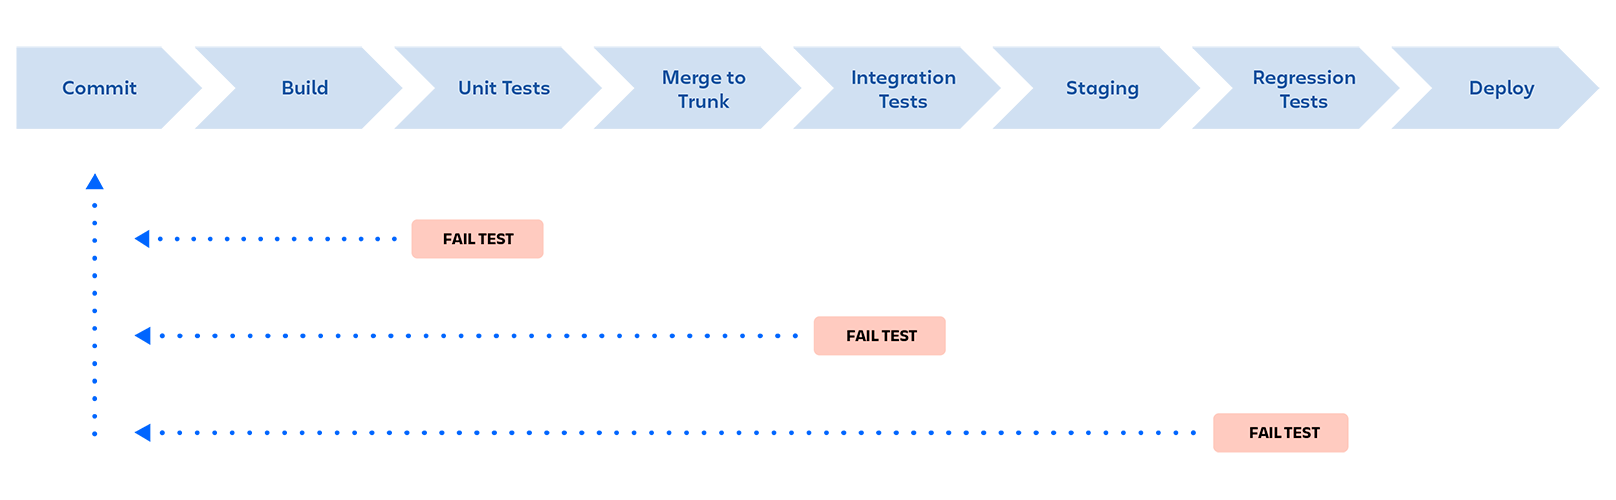 DevOps Pipeline: Commit, Build, Unit Tests, Merge to Trunk, Integration Tests, Staging, Regression Tests, Deploy. Pipeline is stopped if a tests fails at any stage, and feedback is provided to the developer.